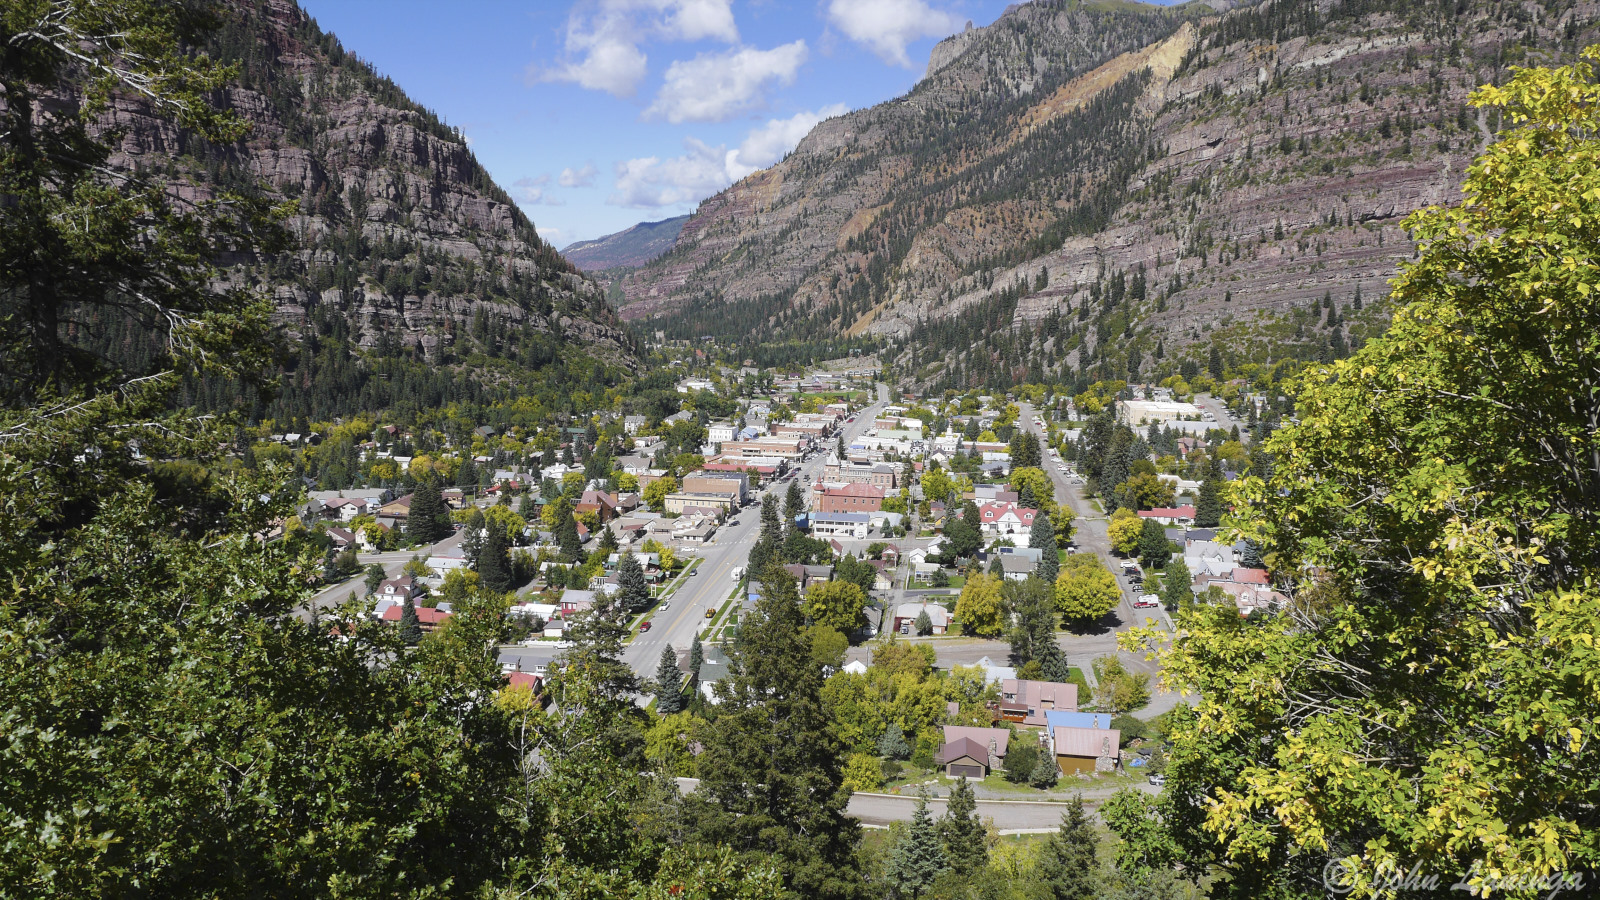 The town of Ouray, CO